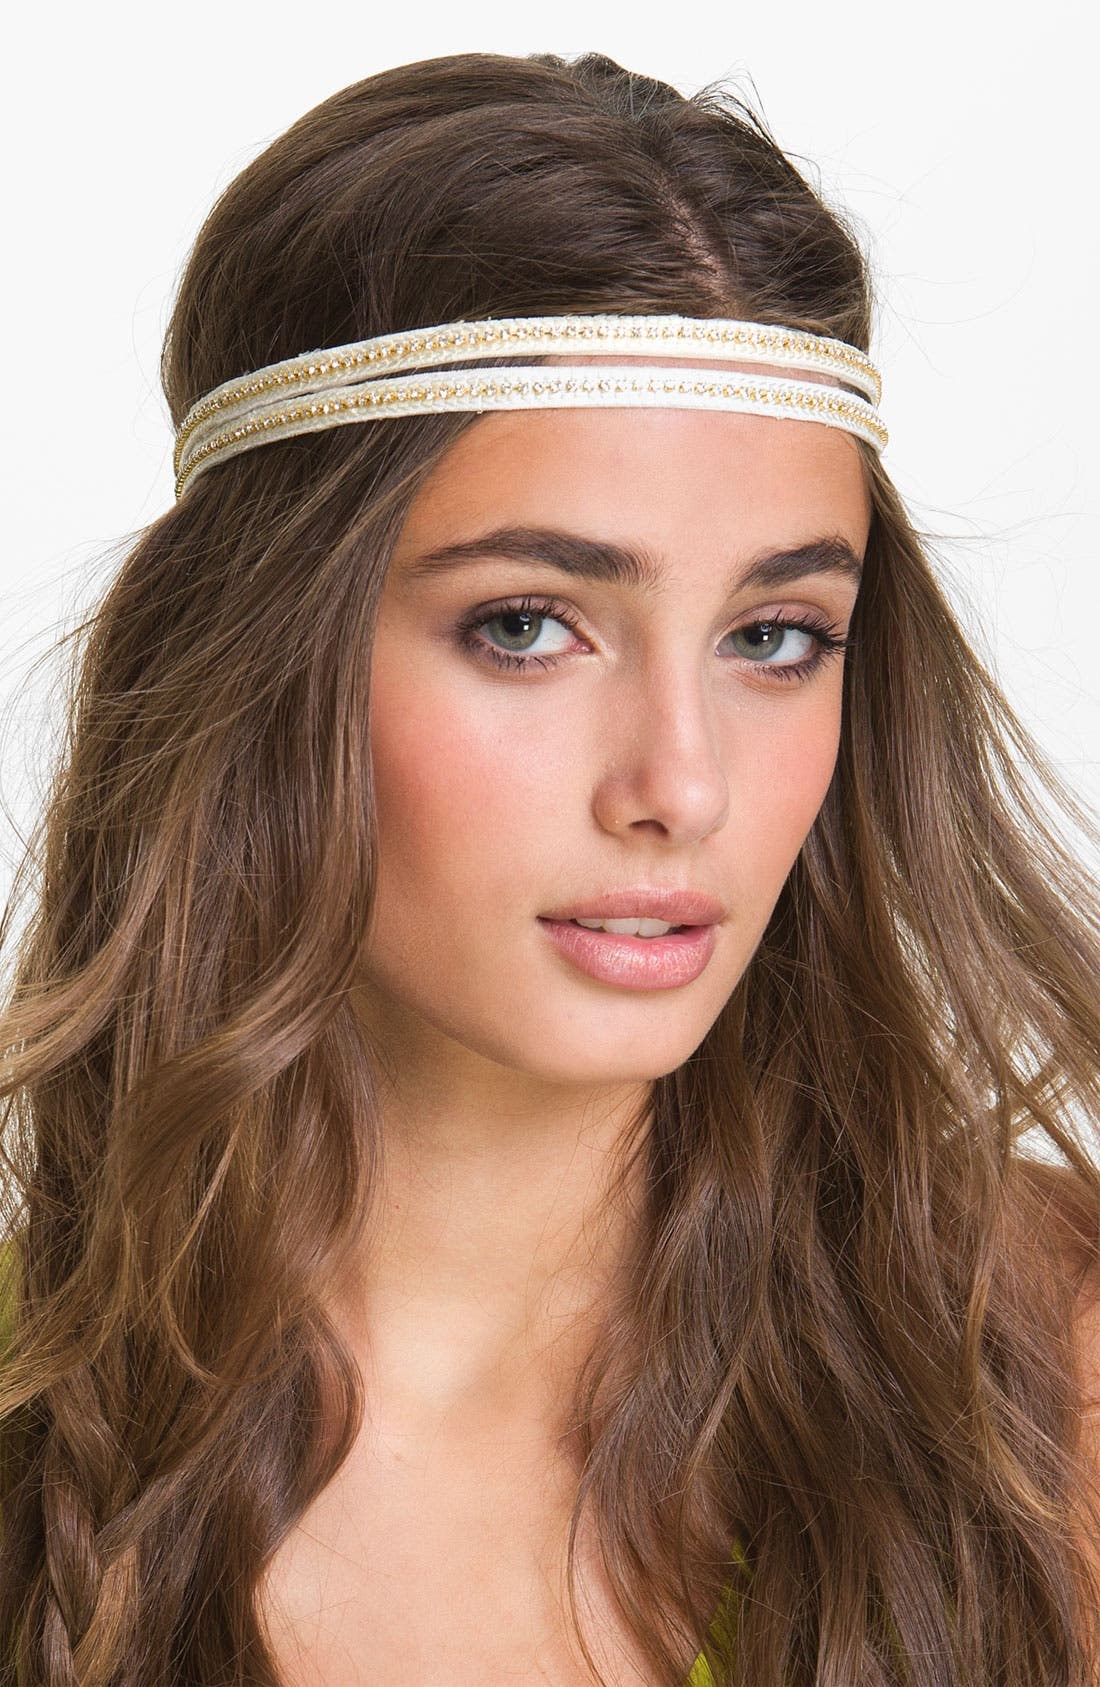 Alternate Image 1 Selected - Lulu Rhinestone Headband